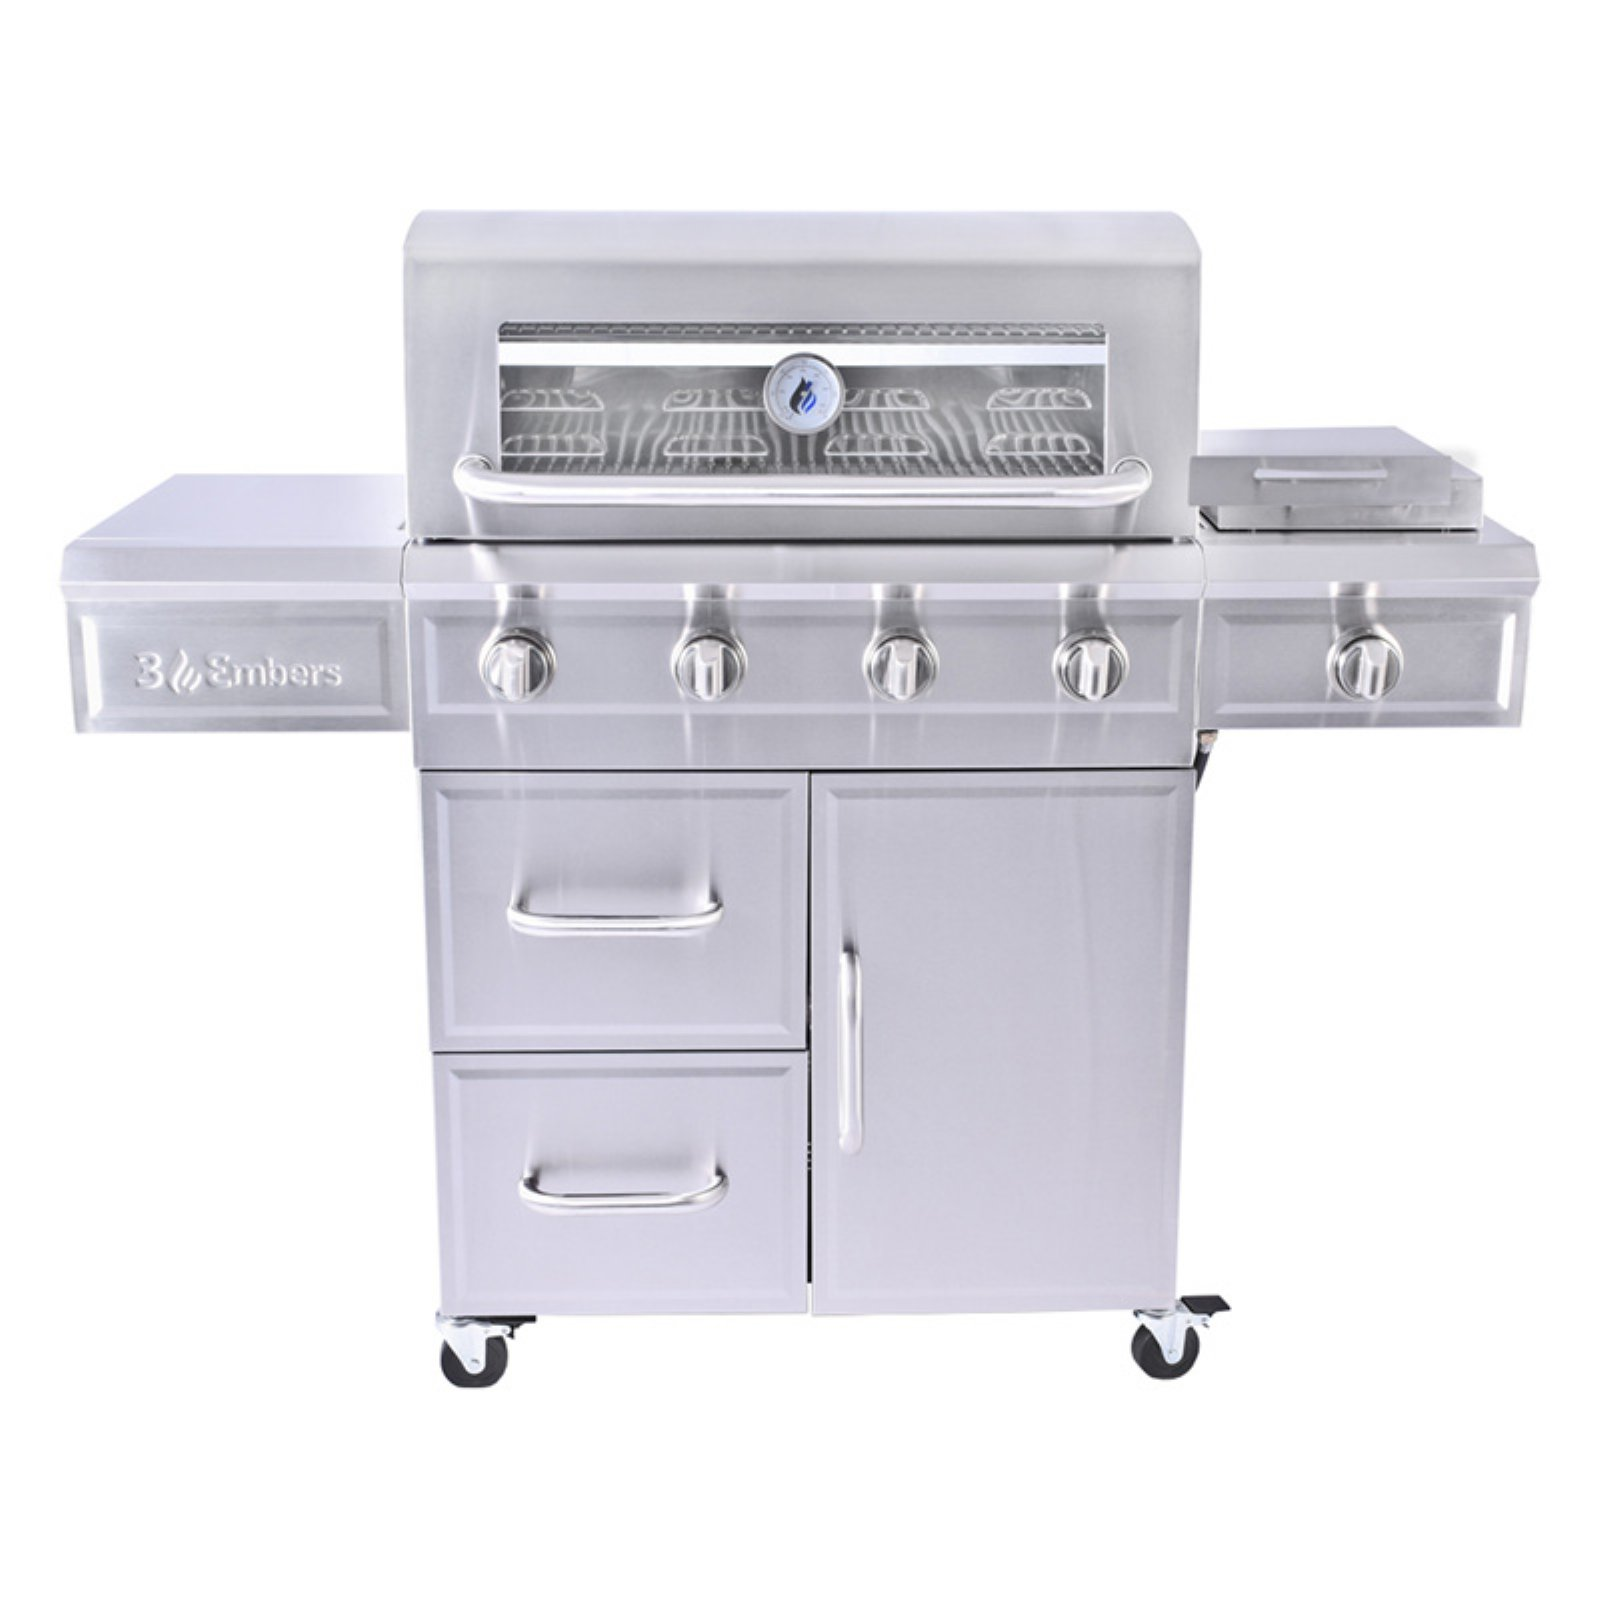 3 Embers GAS7480BS 4-burner Gas Grill by The Boltz Group LLC